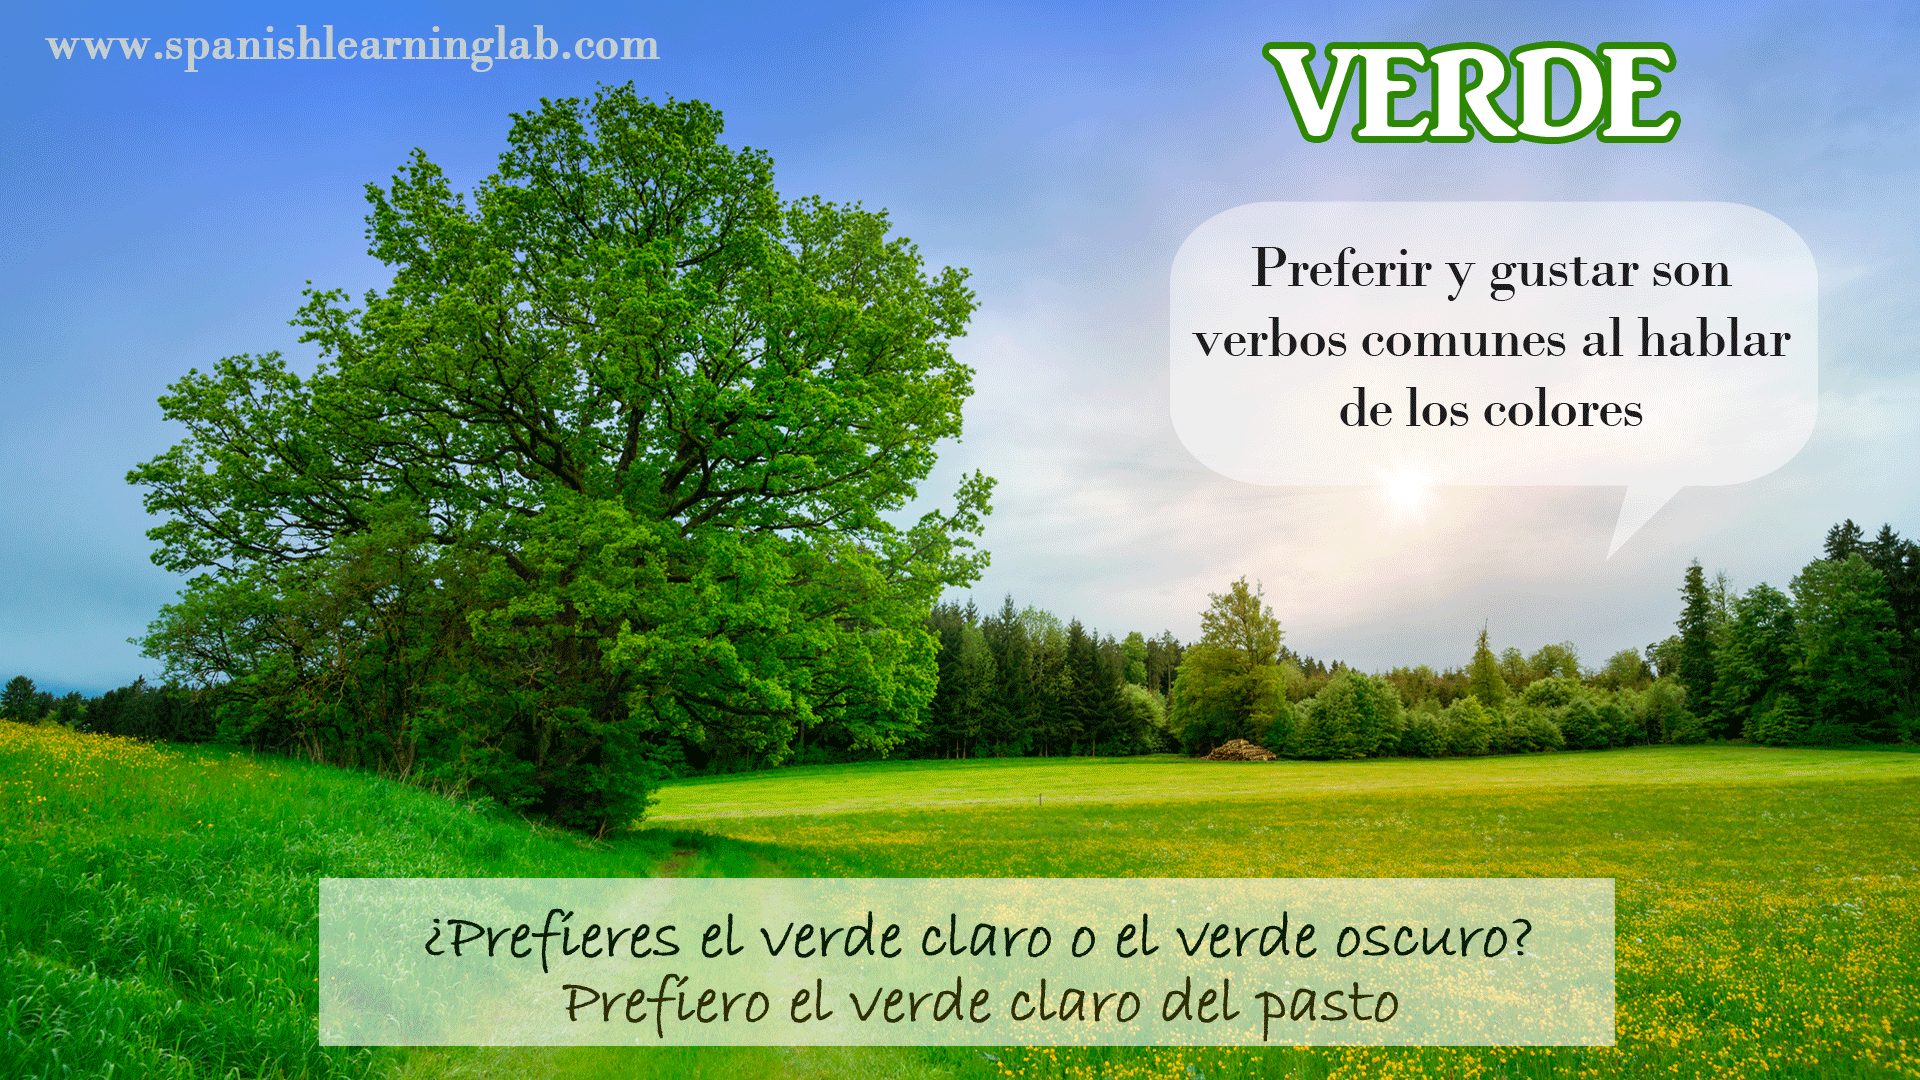 How To Say Green In Spanish Verde Preferir To Prefer And Gustar To Like Are Common Verbs W Spanish Colors Learning Spanish Spanish Language Learning [ 1080 x 1920 Pixel ]